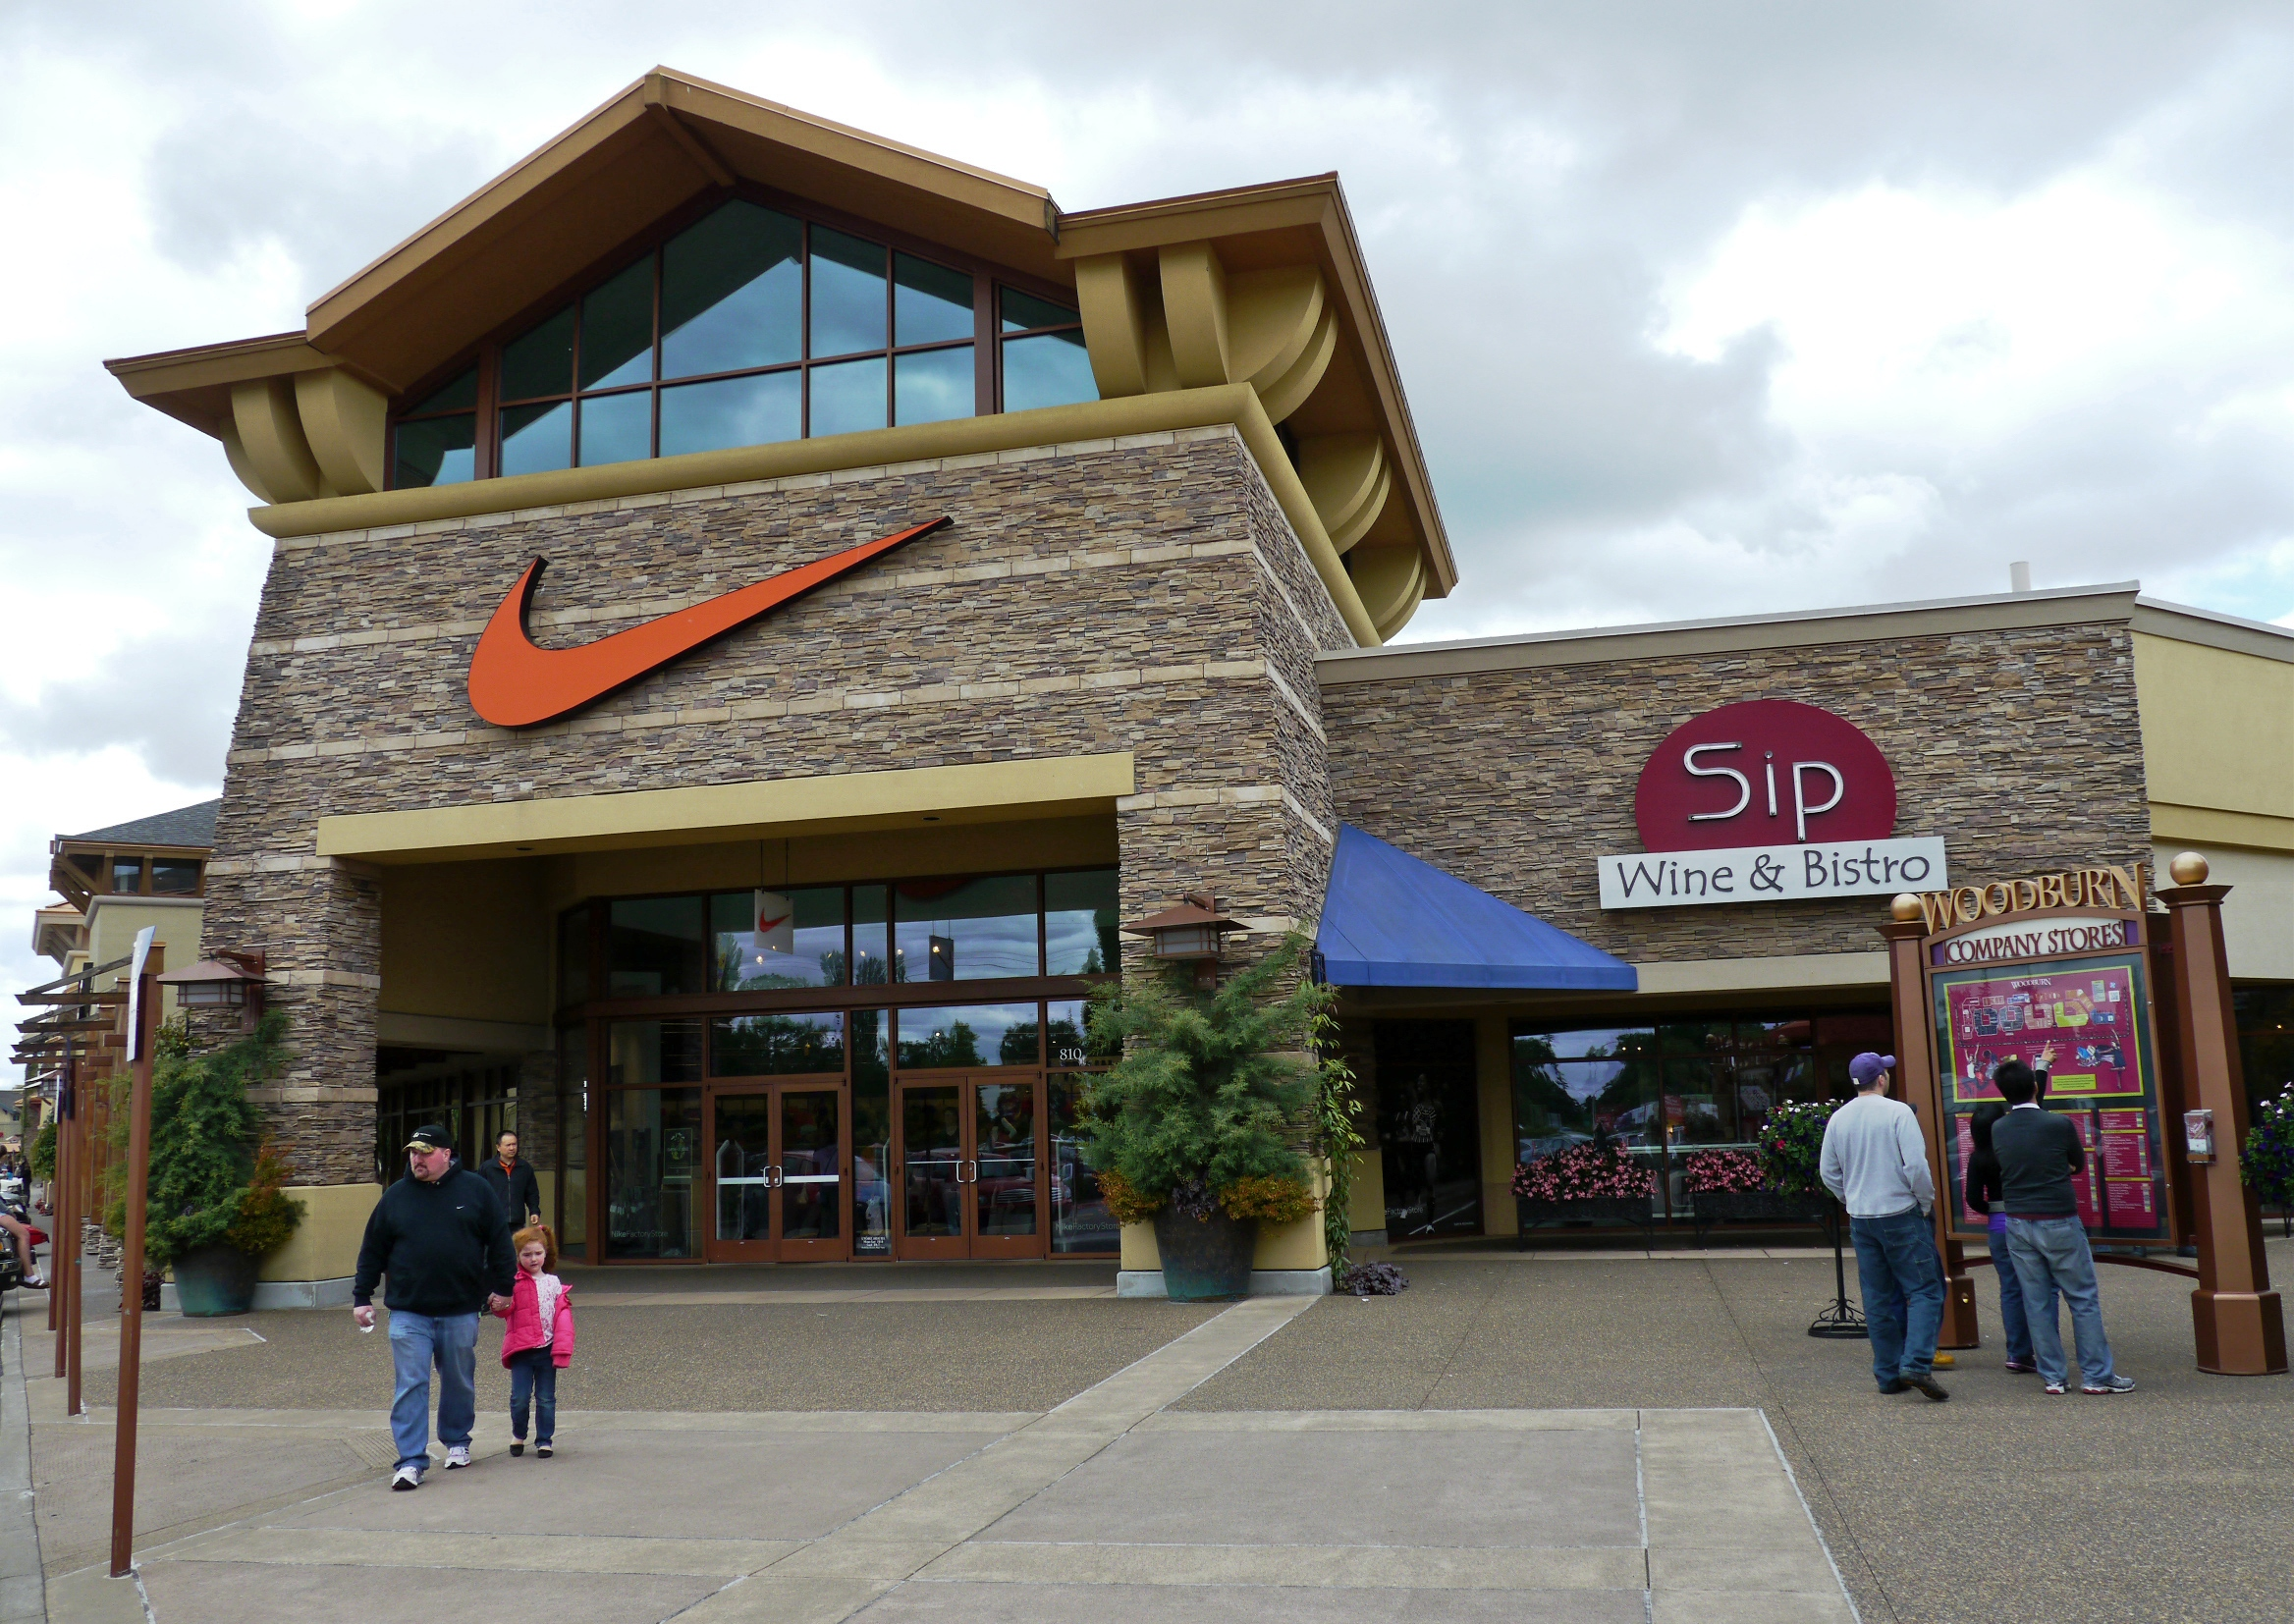 Nike_Factory_Store_at_outlet_mall_in_Woodburn_OR